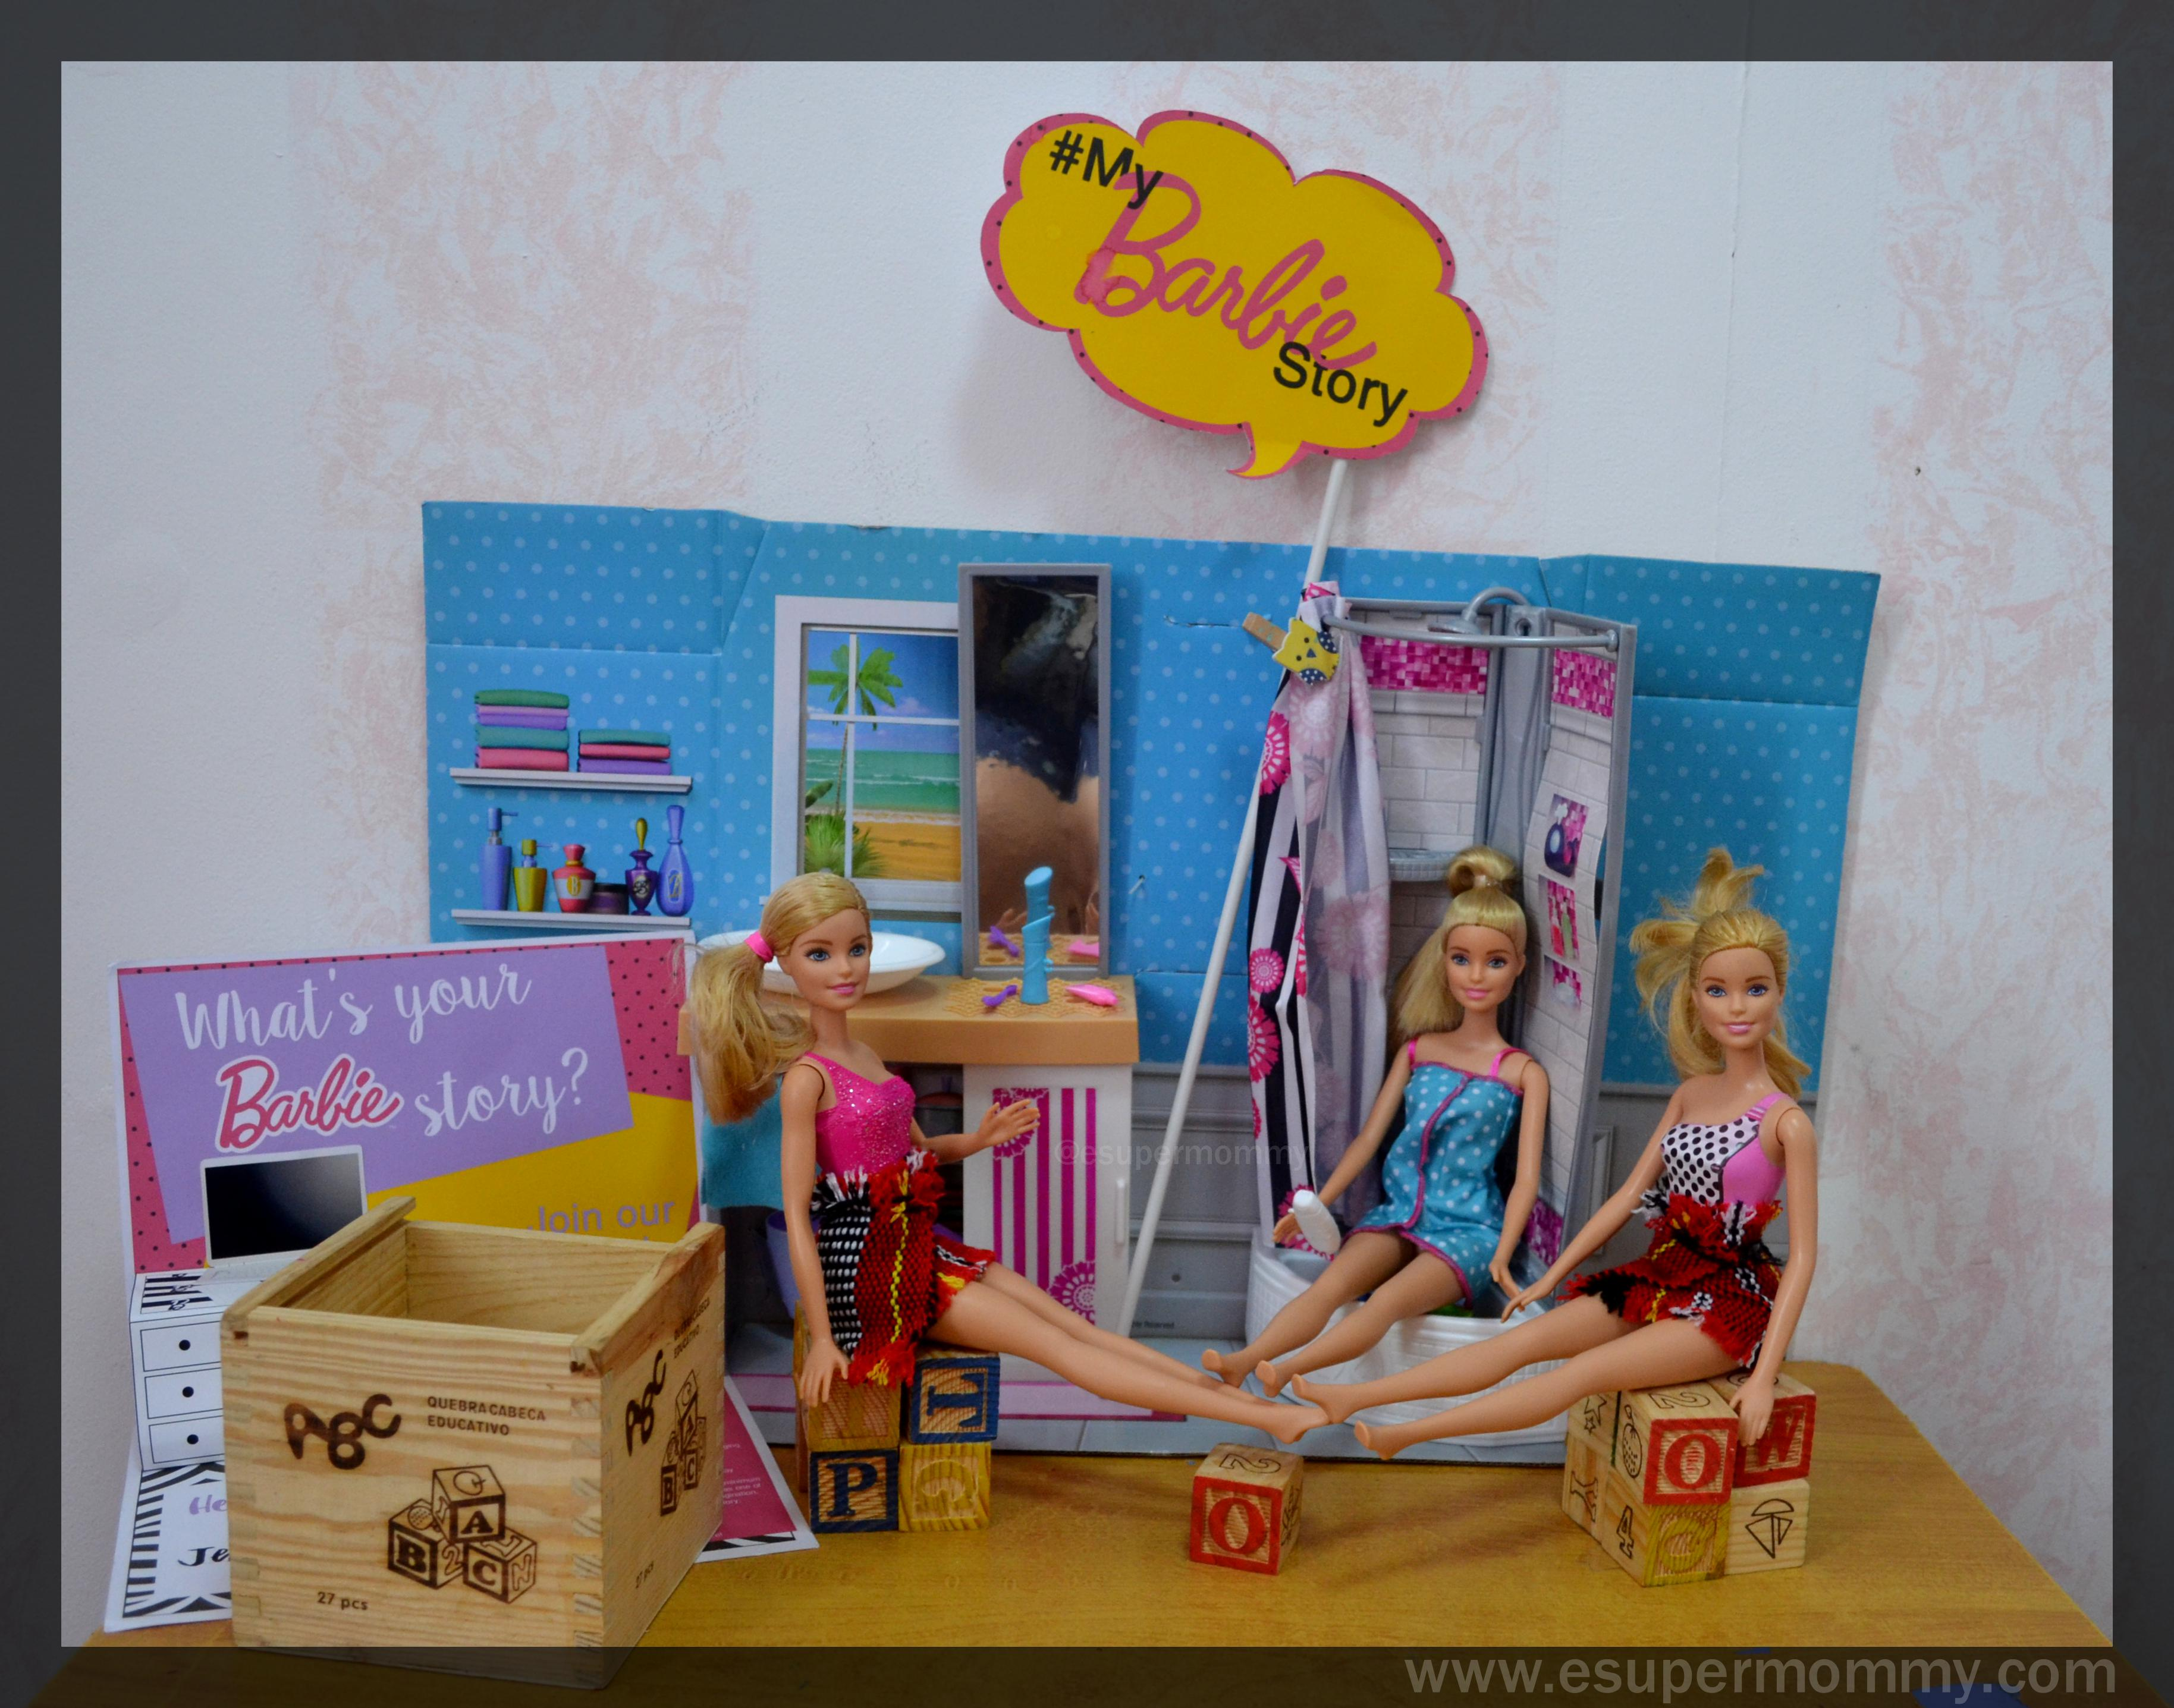 #MyBarbieStory by Mommy Jem and Mirai